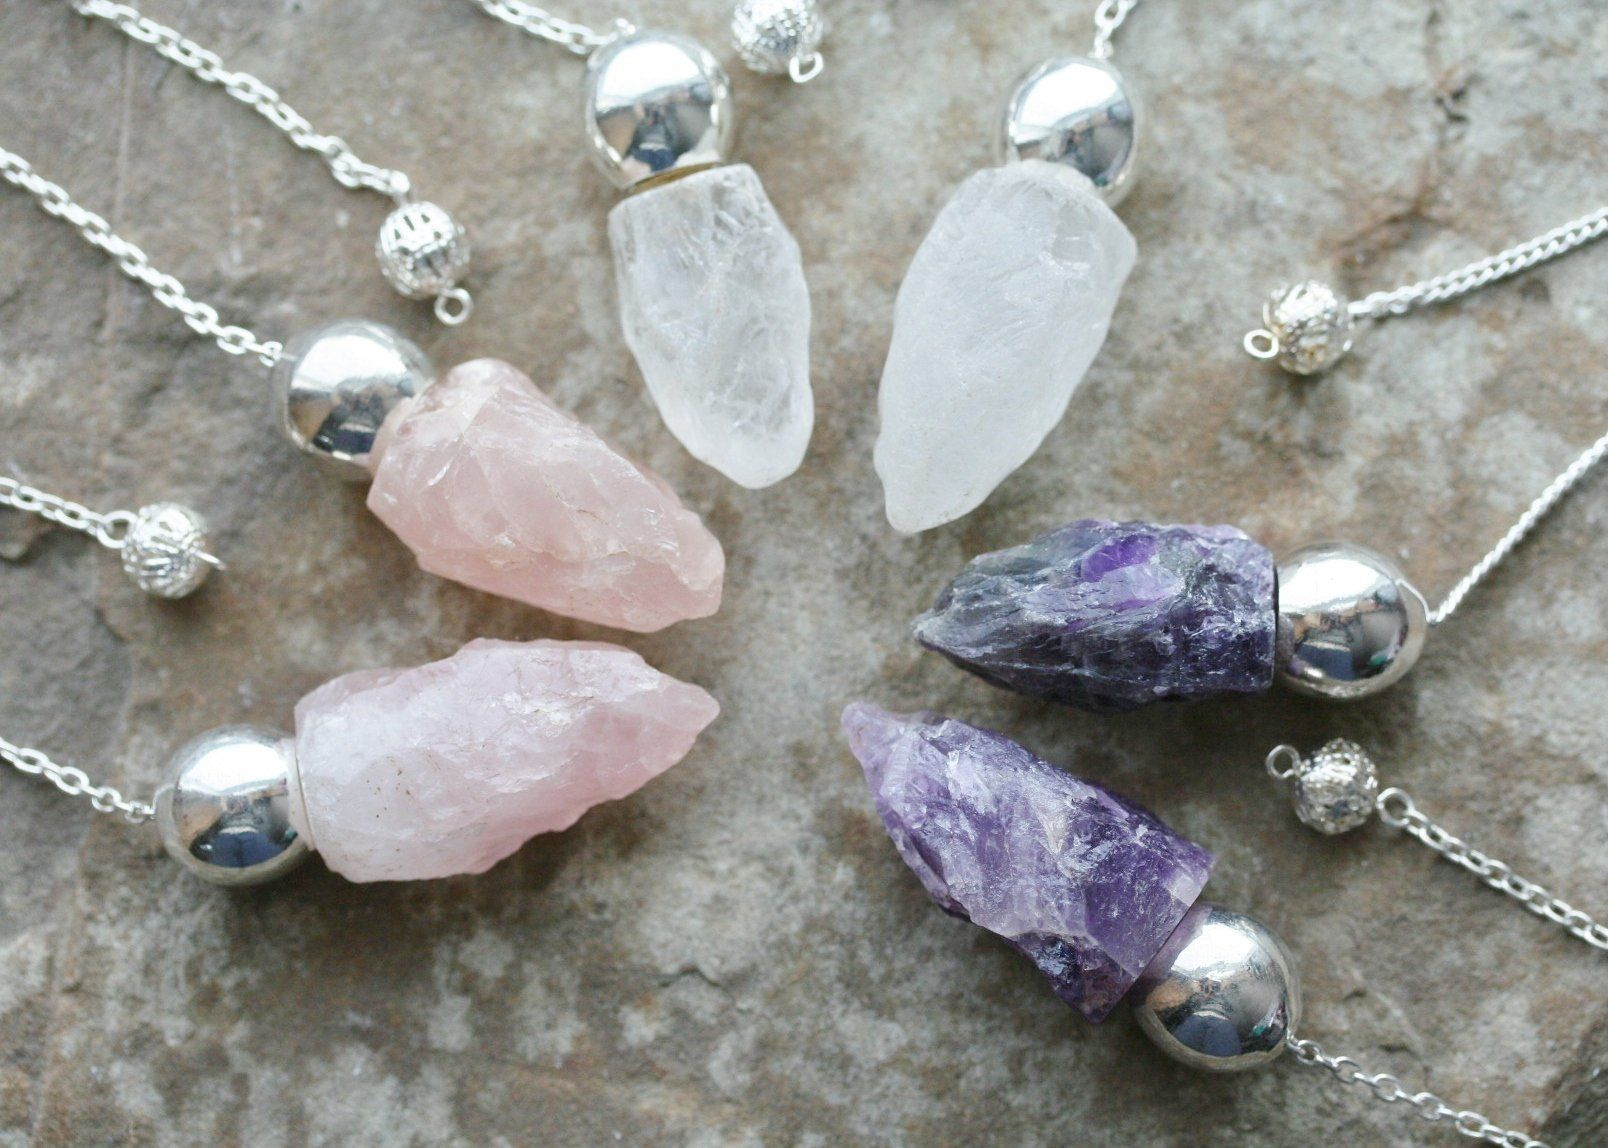 Healing Crystals India 3 Piece Chakra Gift Set w//Reiki Healing Dowsing Crystal Pendulum Package Includes Amethyst Rose Quartz and Clear Quartz